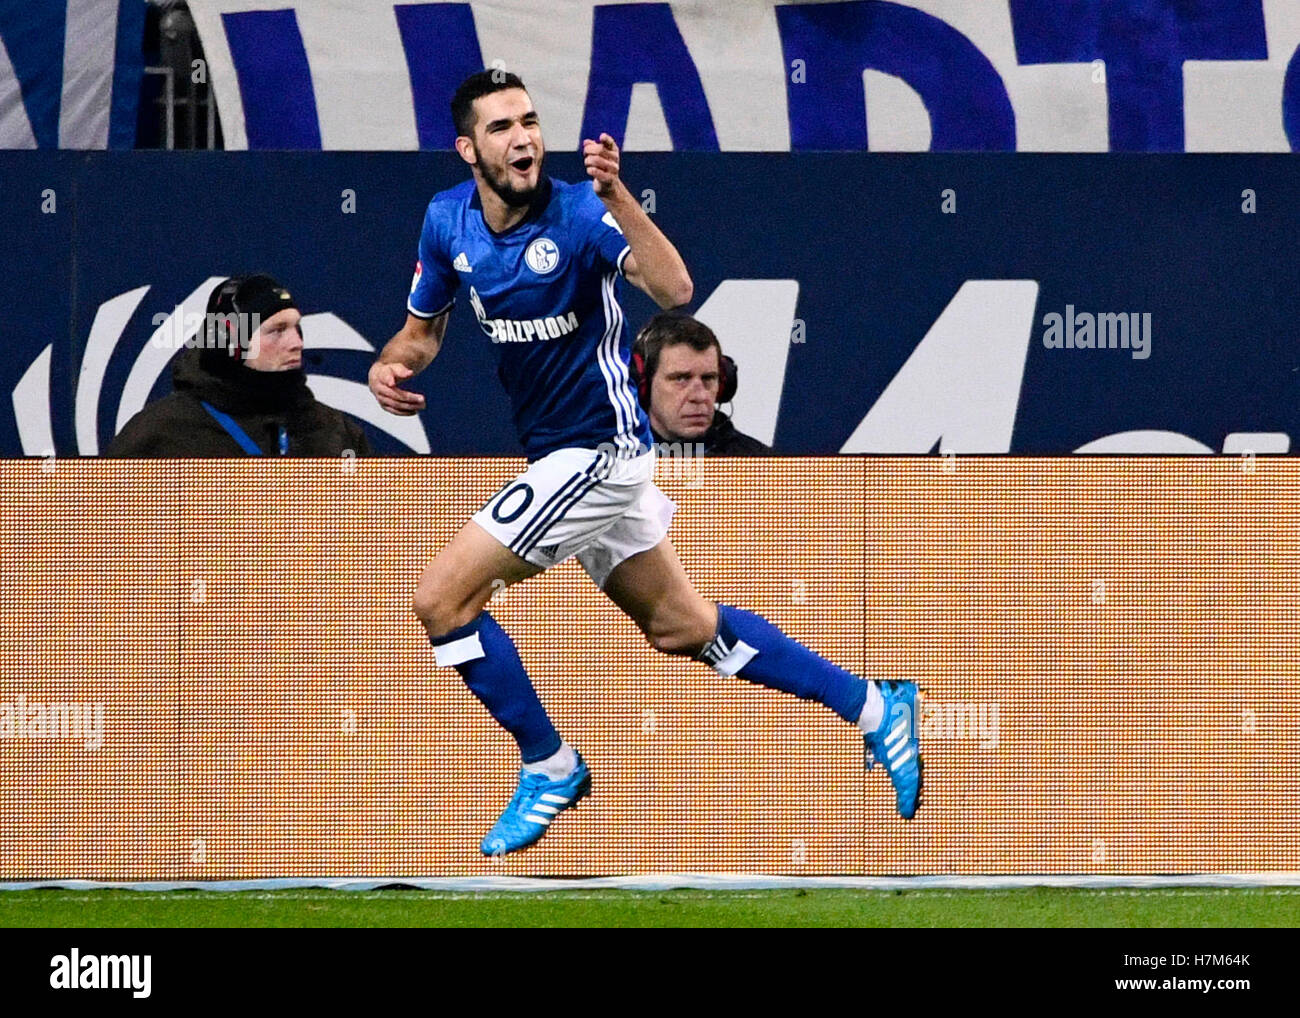 Nabil Bentaleb High Resolution Stock Photography and Images - Alamy